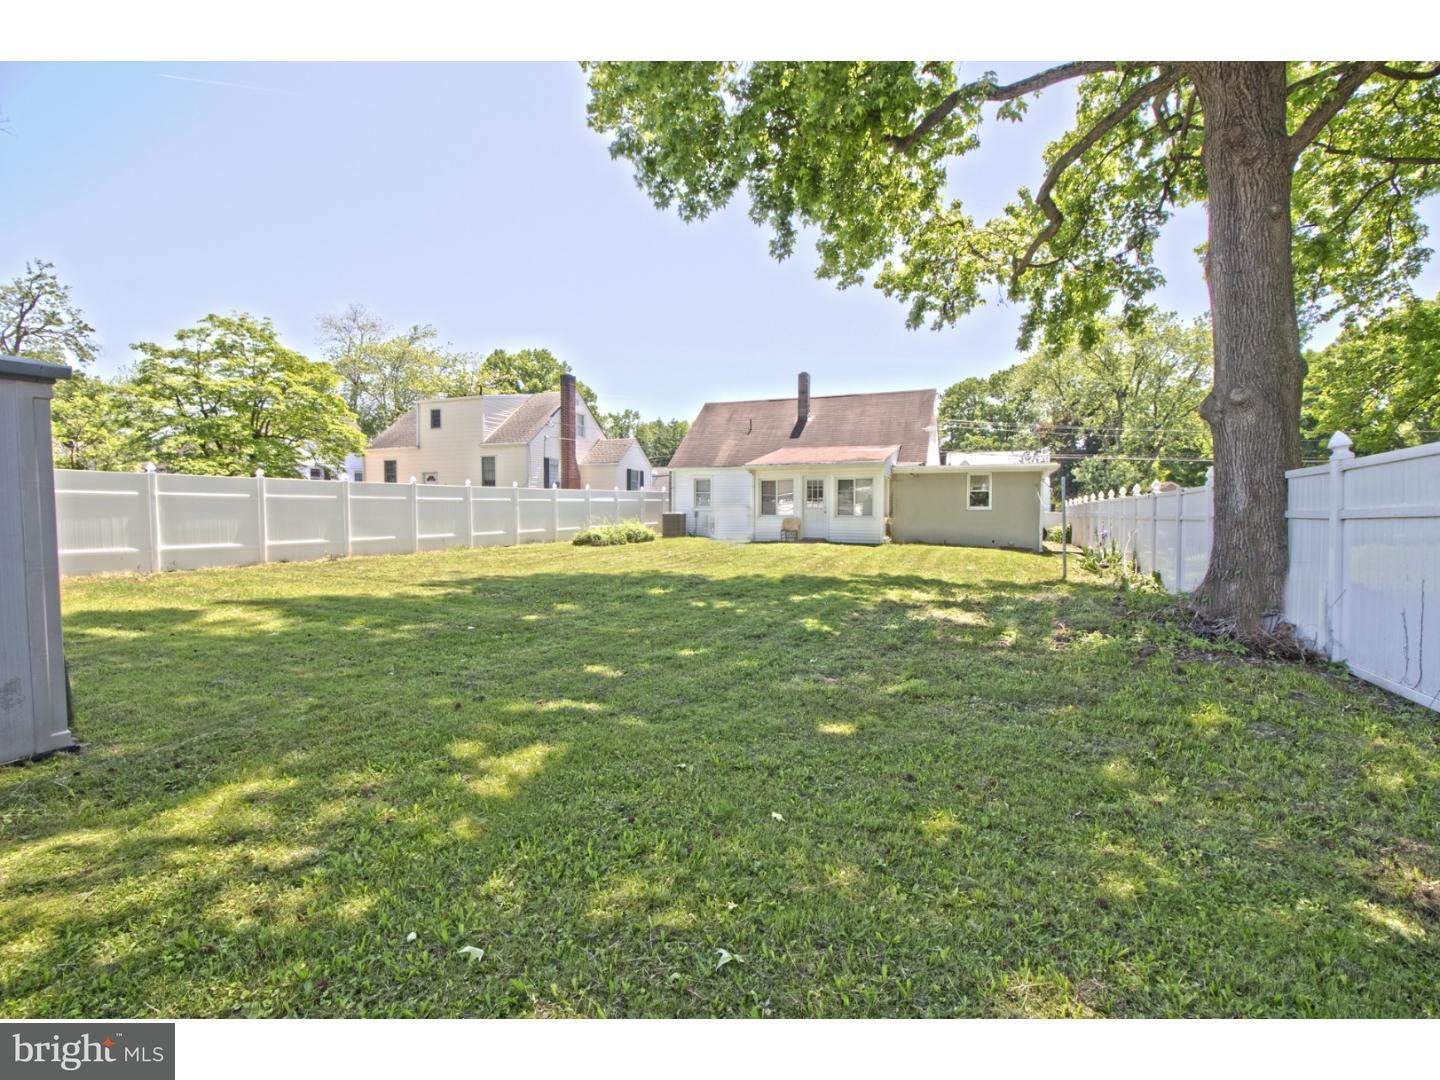 266 WOOLSTON DR, MORRISVILLE - Listed at $234,900, MORRISVILLE